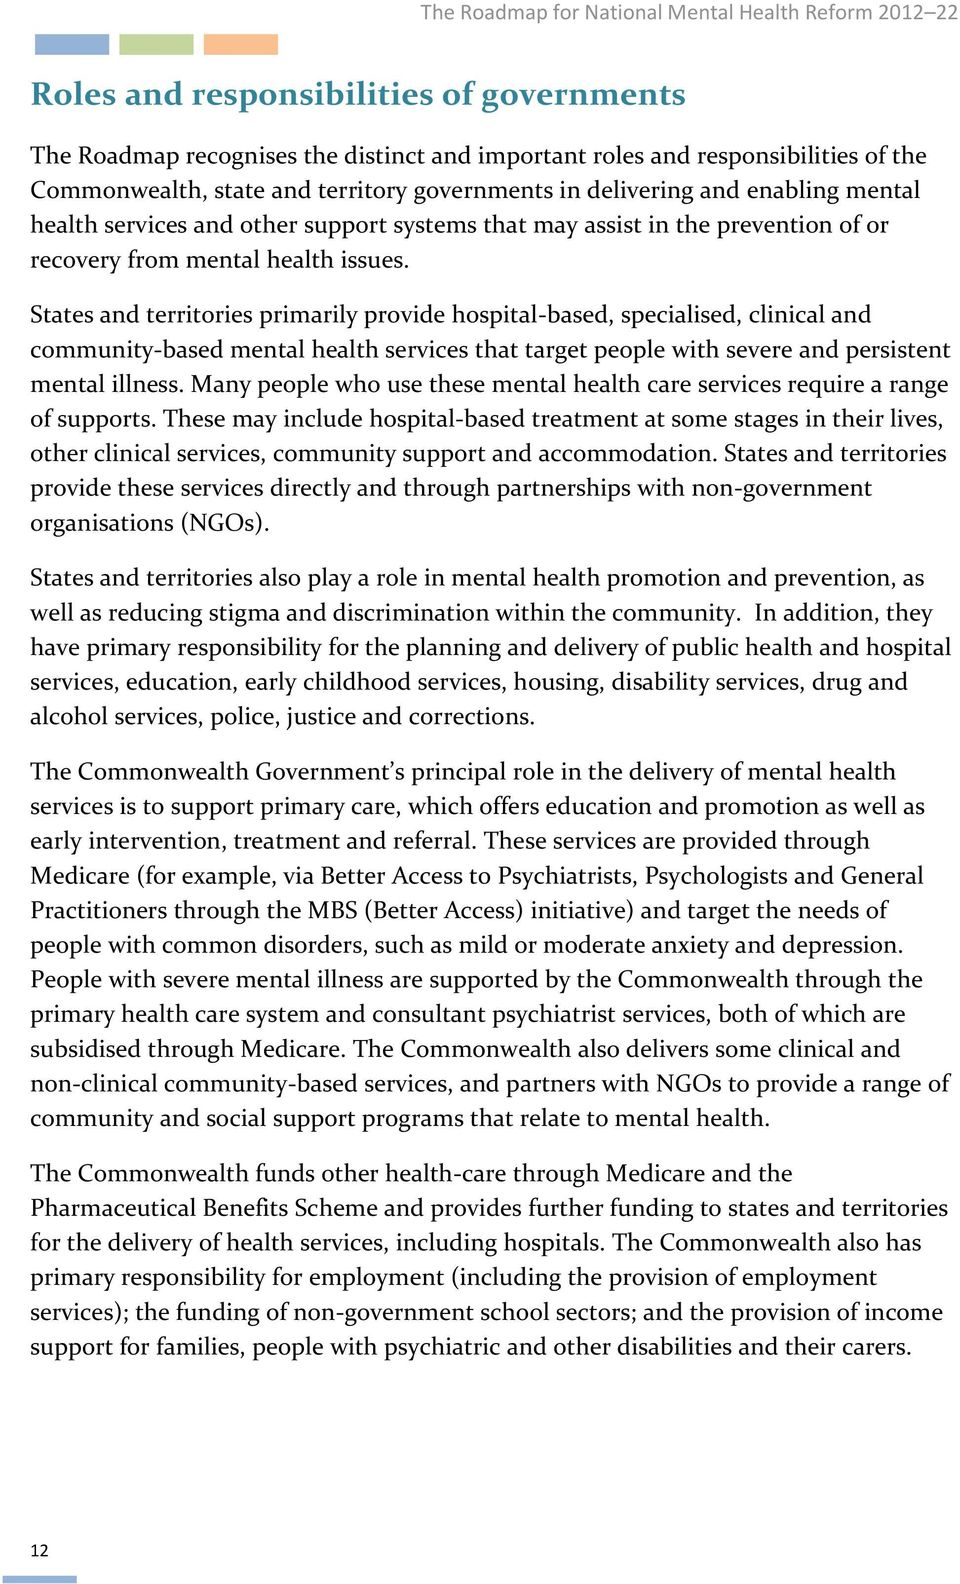 States and territories primarily provide hospital-based, specialised, clinical and community-based mental health services that target people with severe and persistent mental illness.